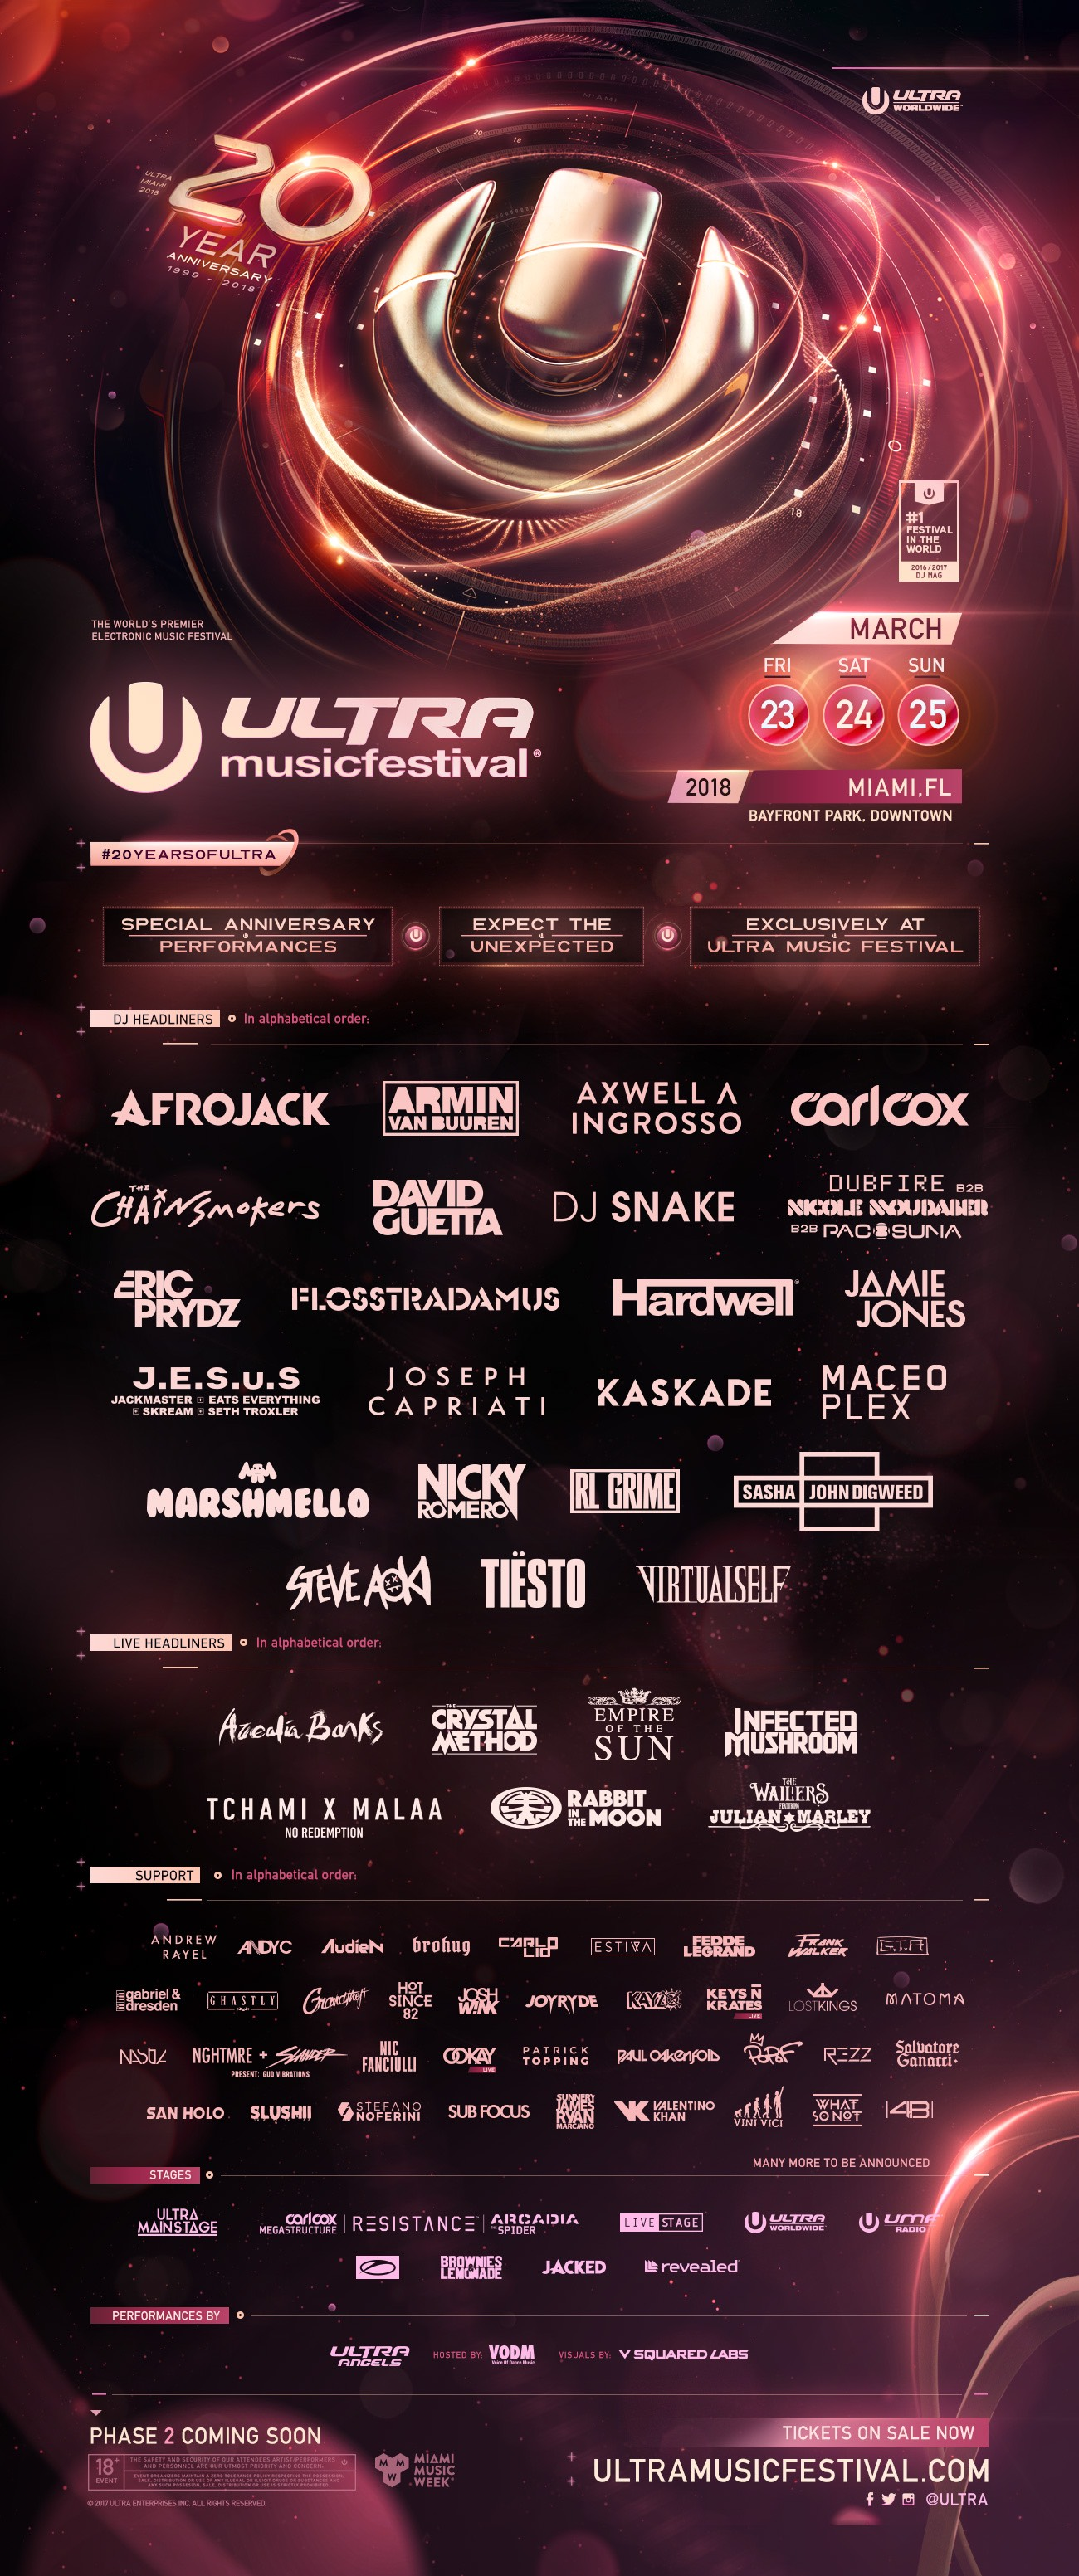 Ultra Music Festival - 20 Year Anniversary Image